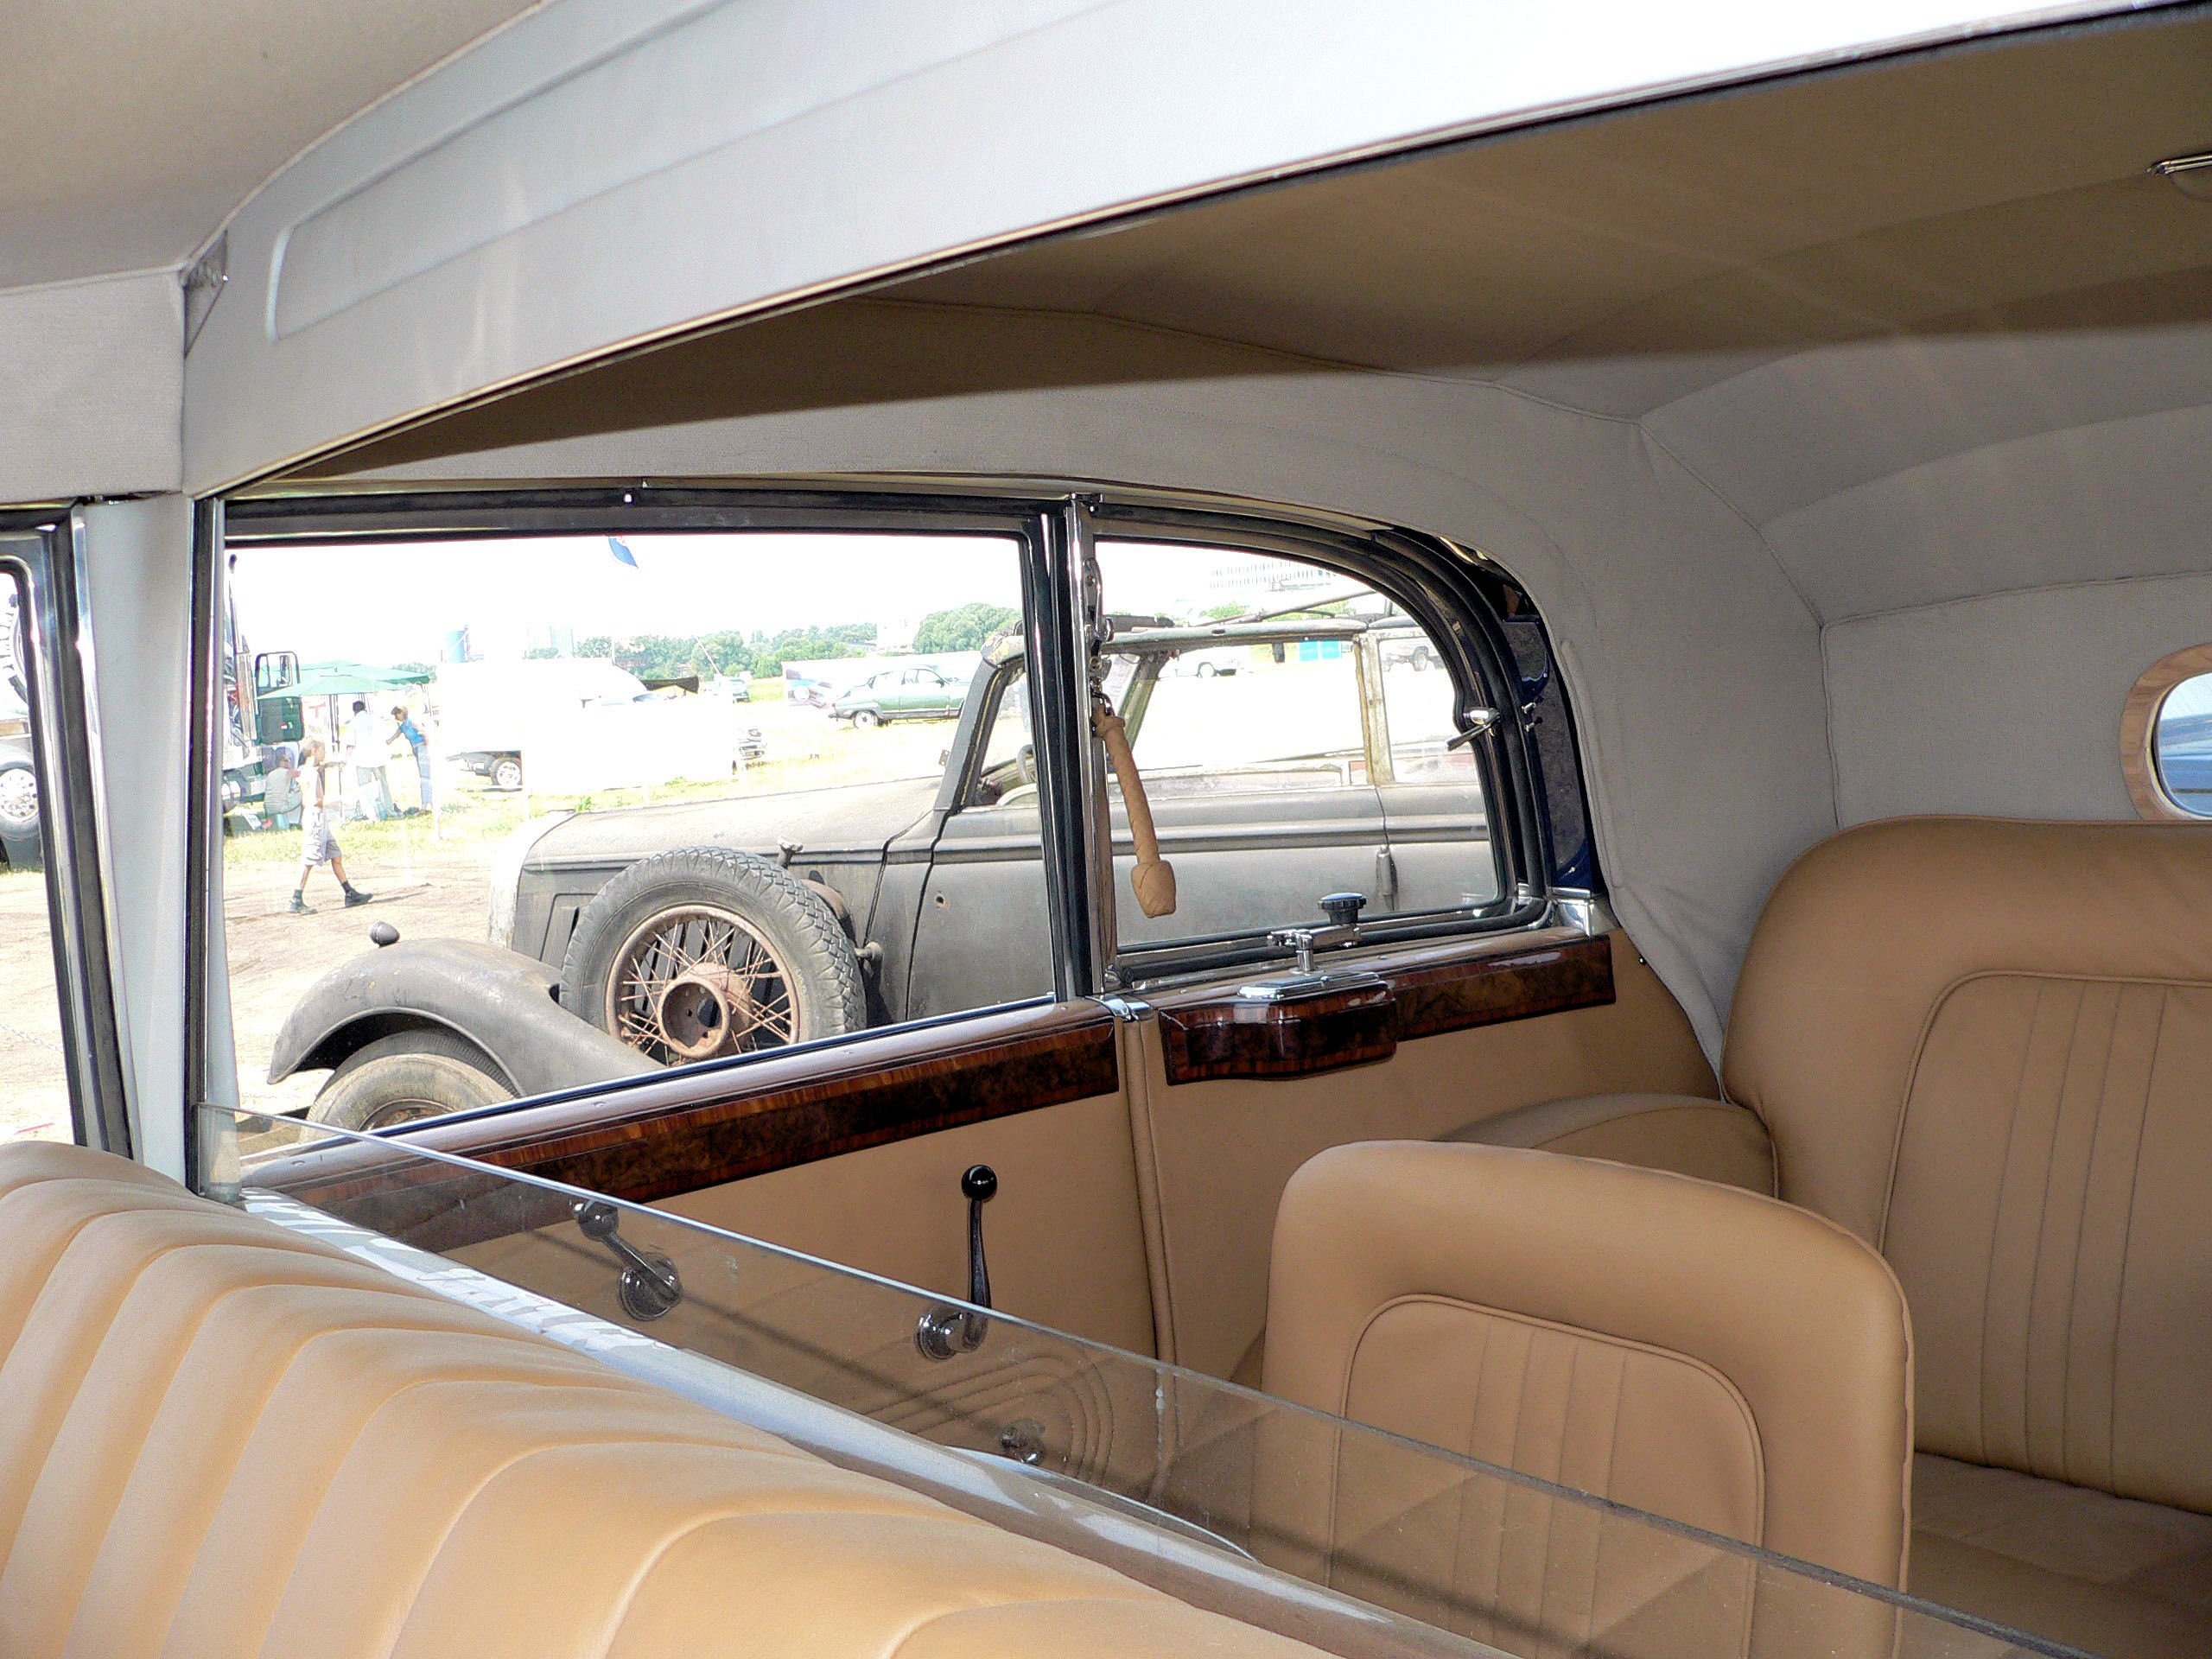 Horch 830bl photo - 1